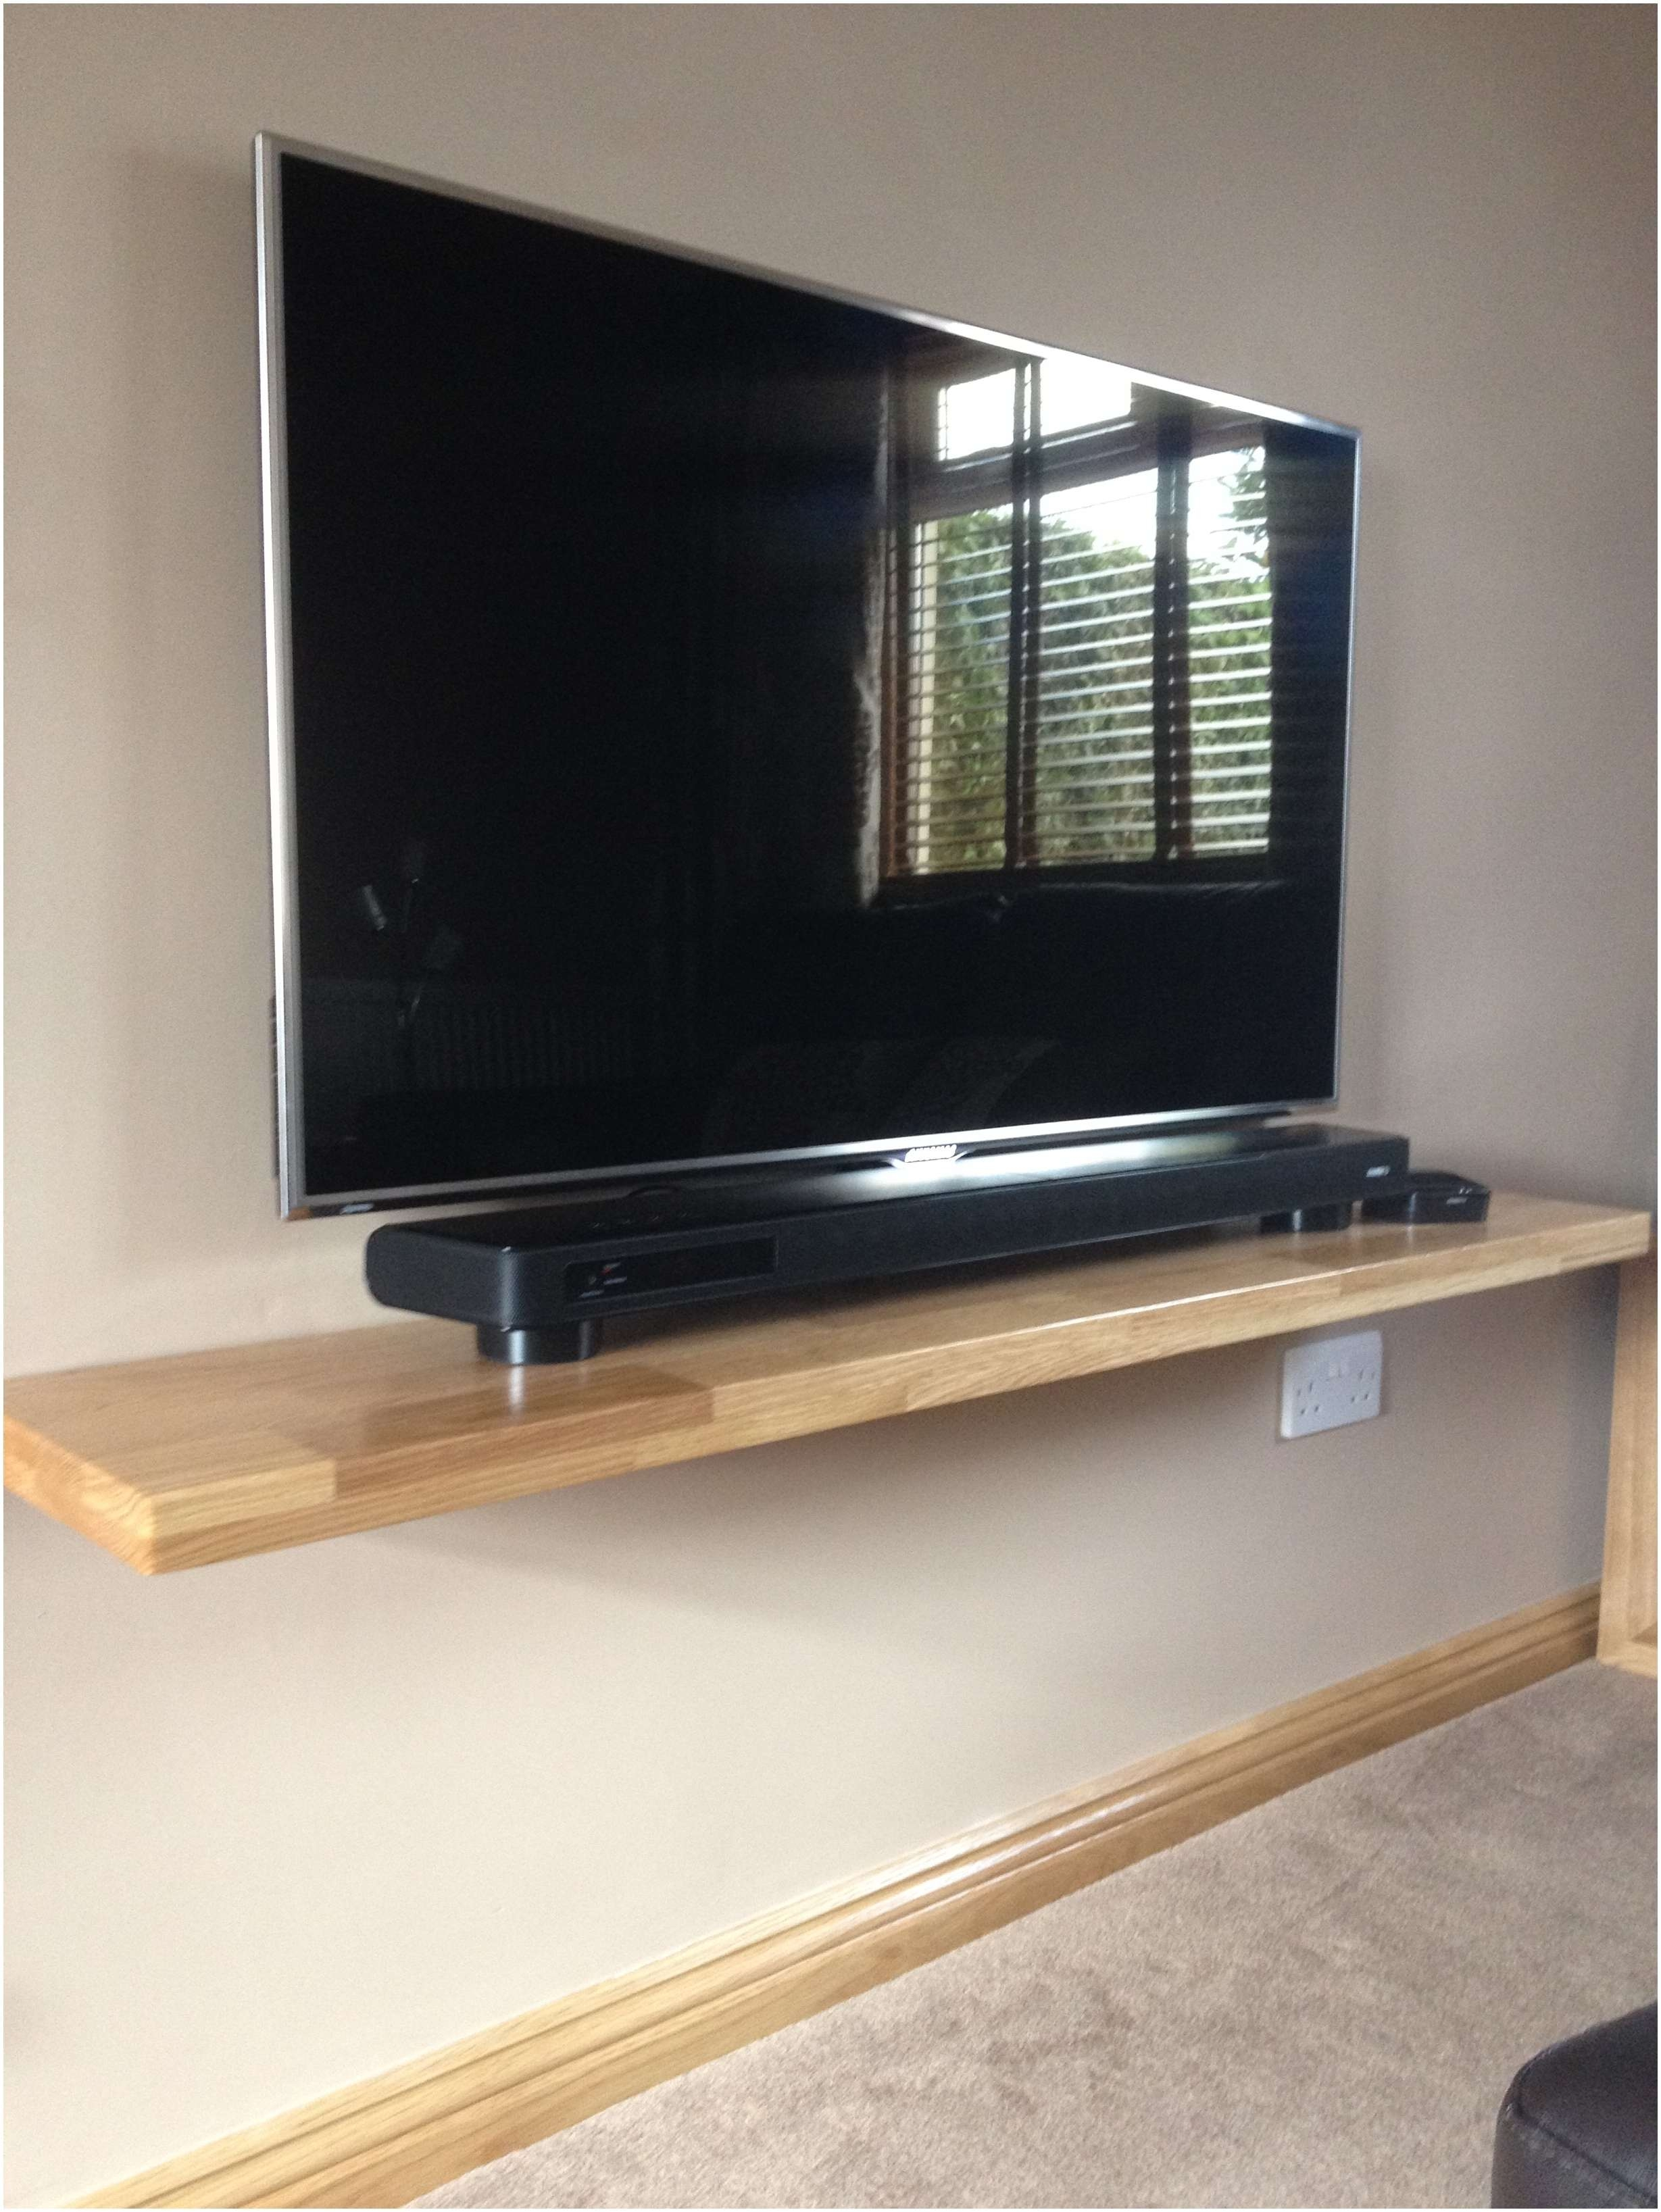 Shelves : Fabulous Floating Entertainment Wall Shelf Vcr Under Tv Pertaining To Under Tv Cabinets (View 11 of 20)